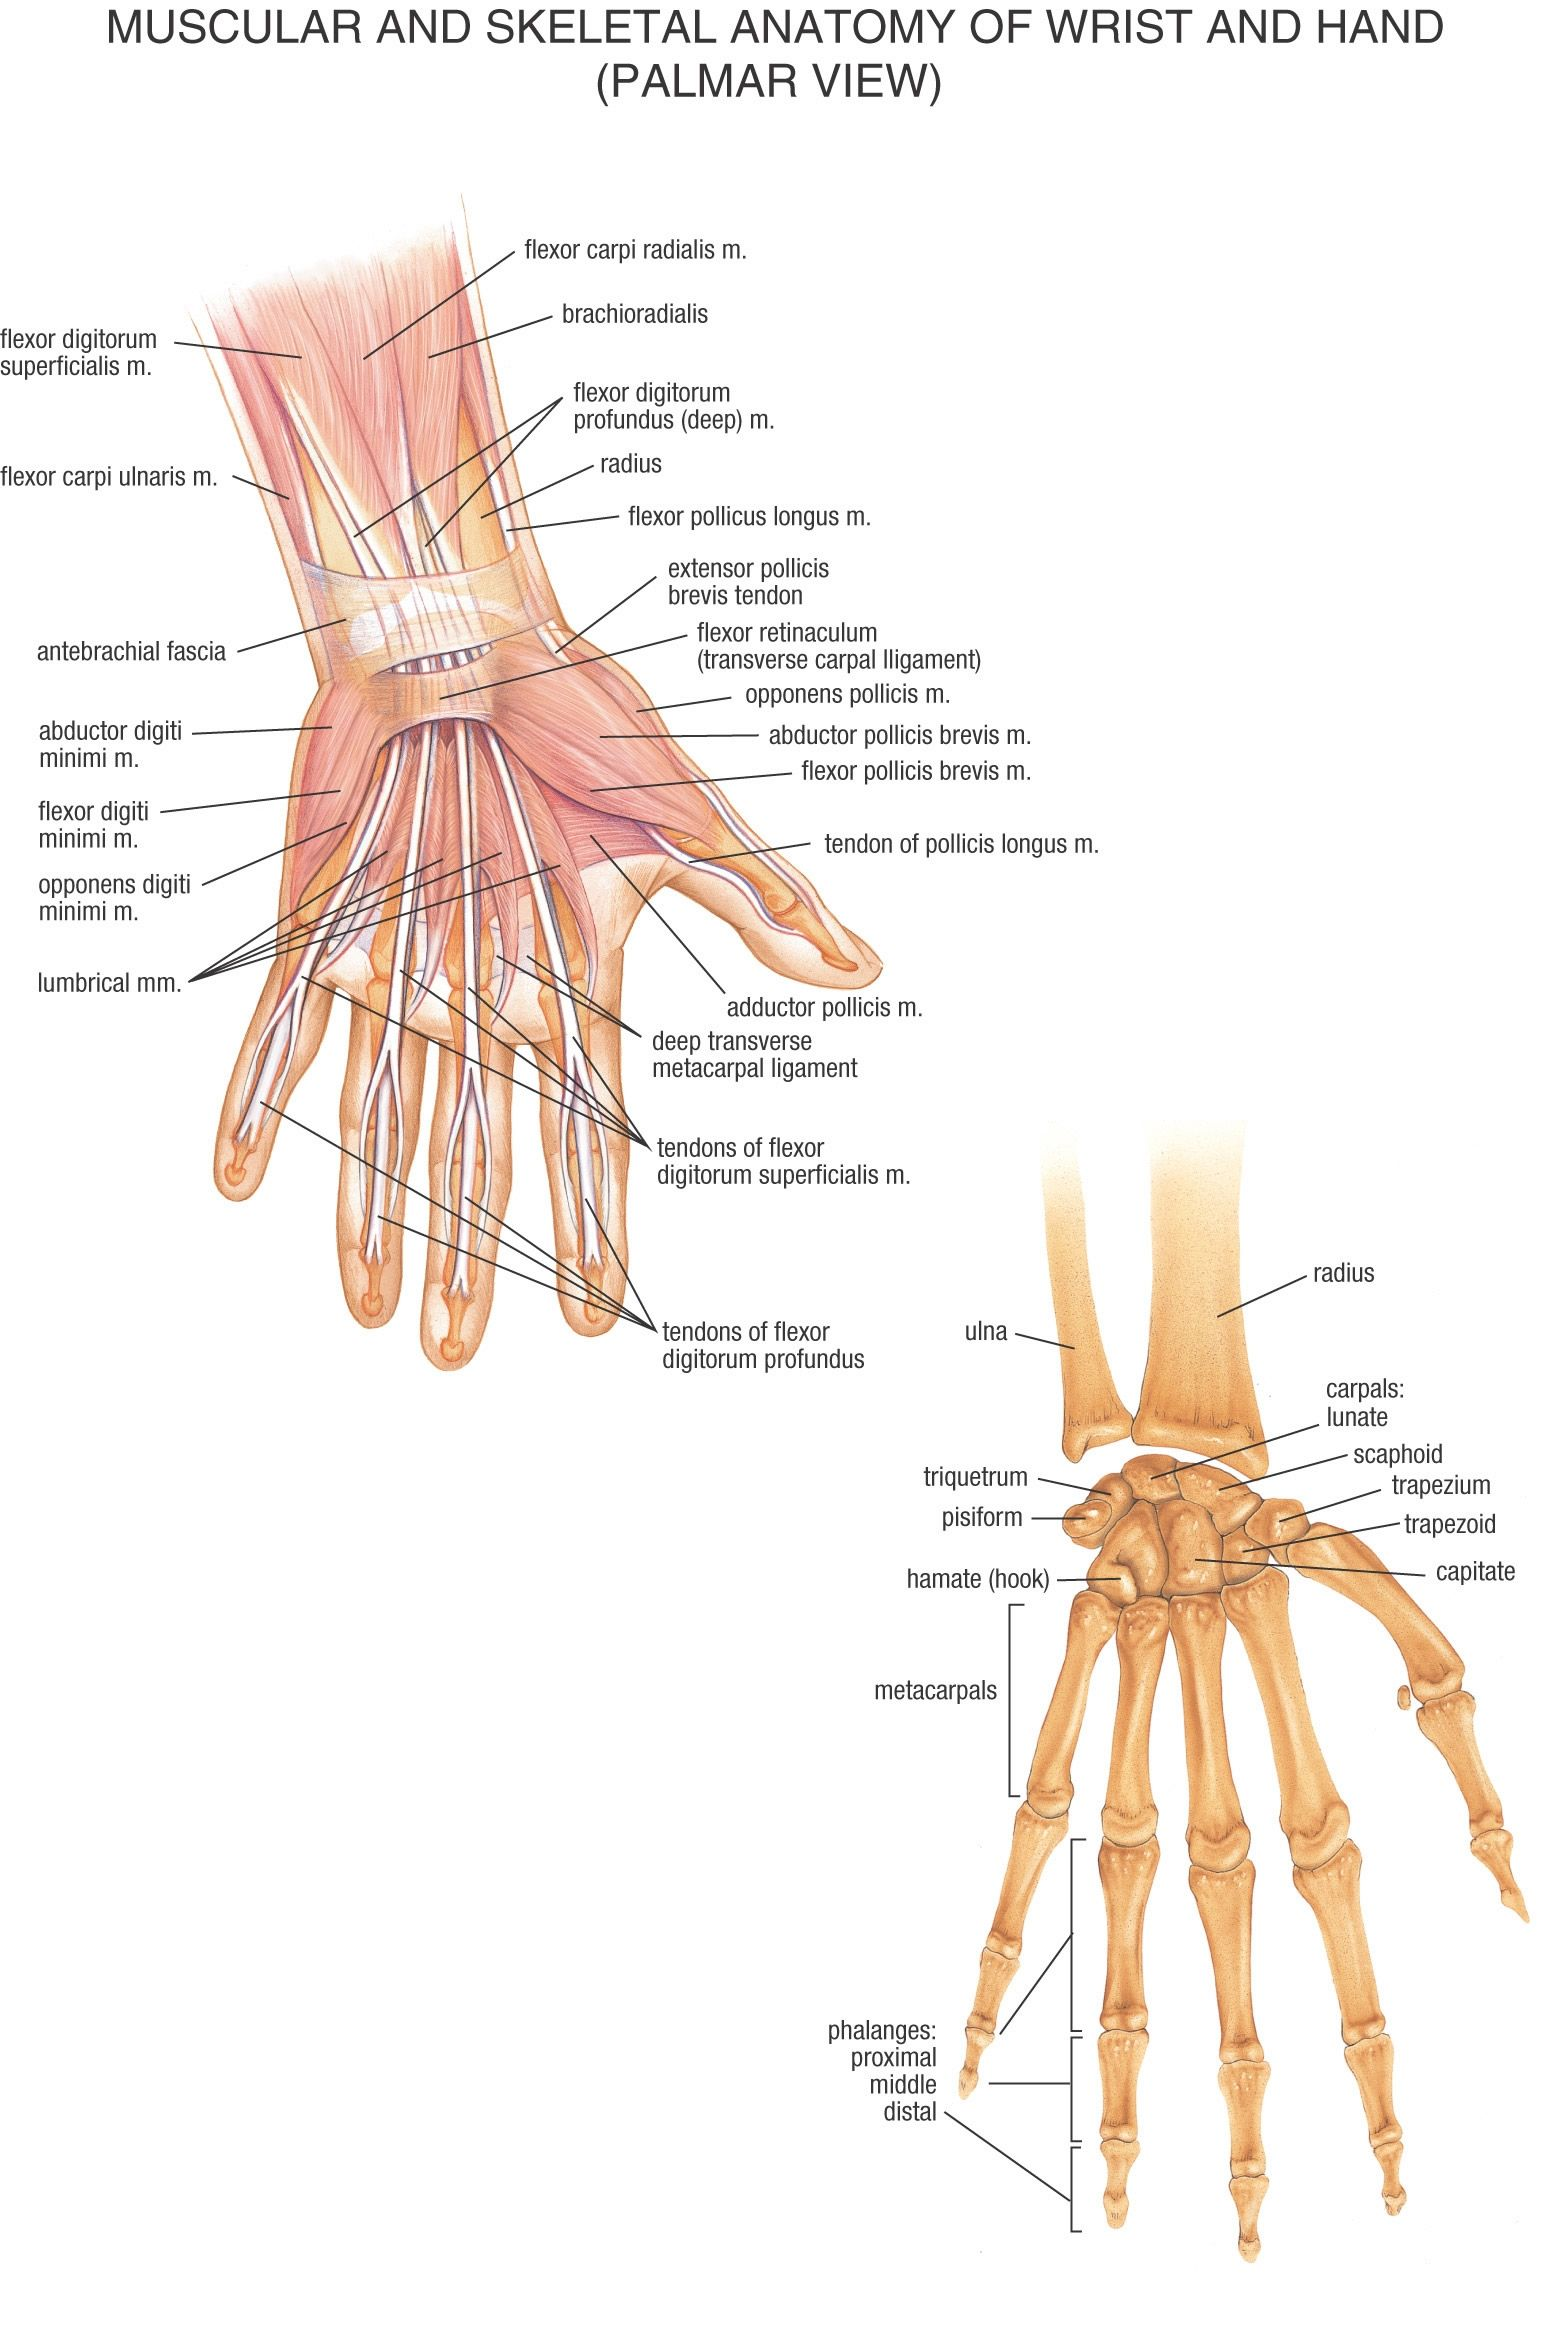 Muscular and Skeletal Anatomy of Wrist and Hand (Palmar View) | OT ...